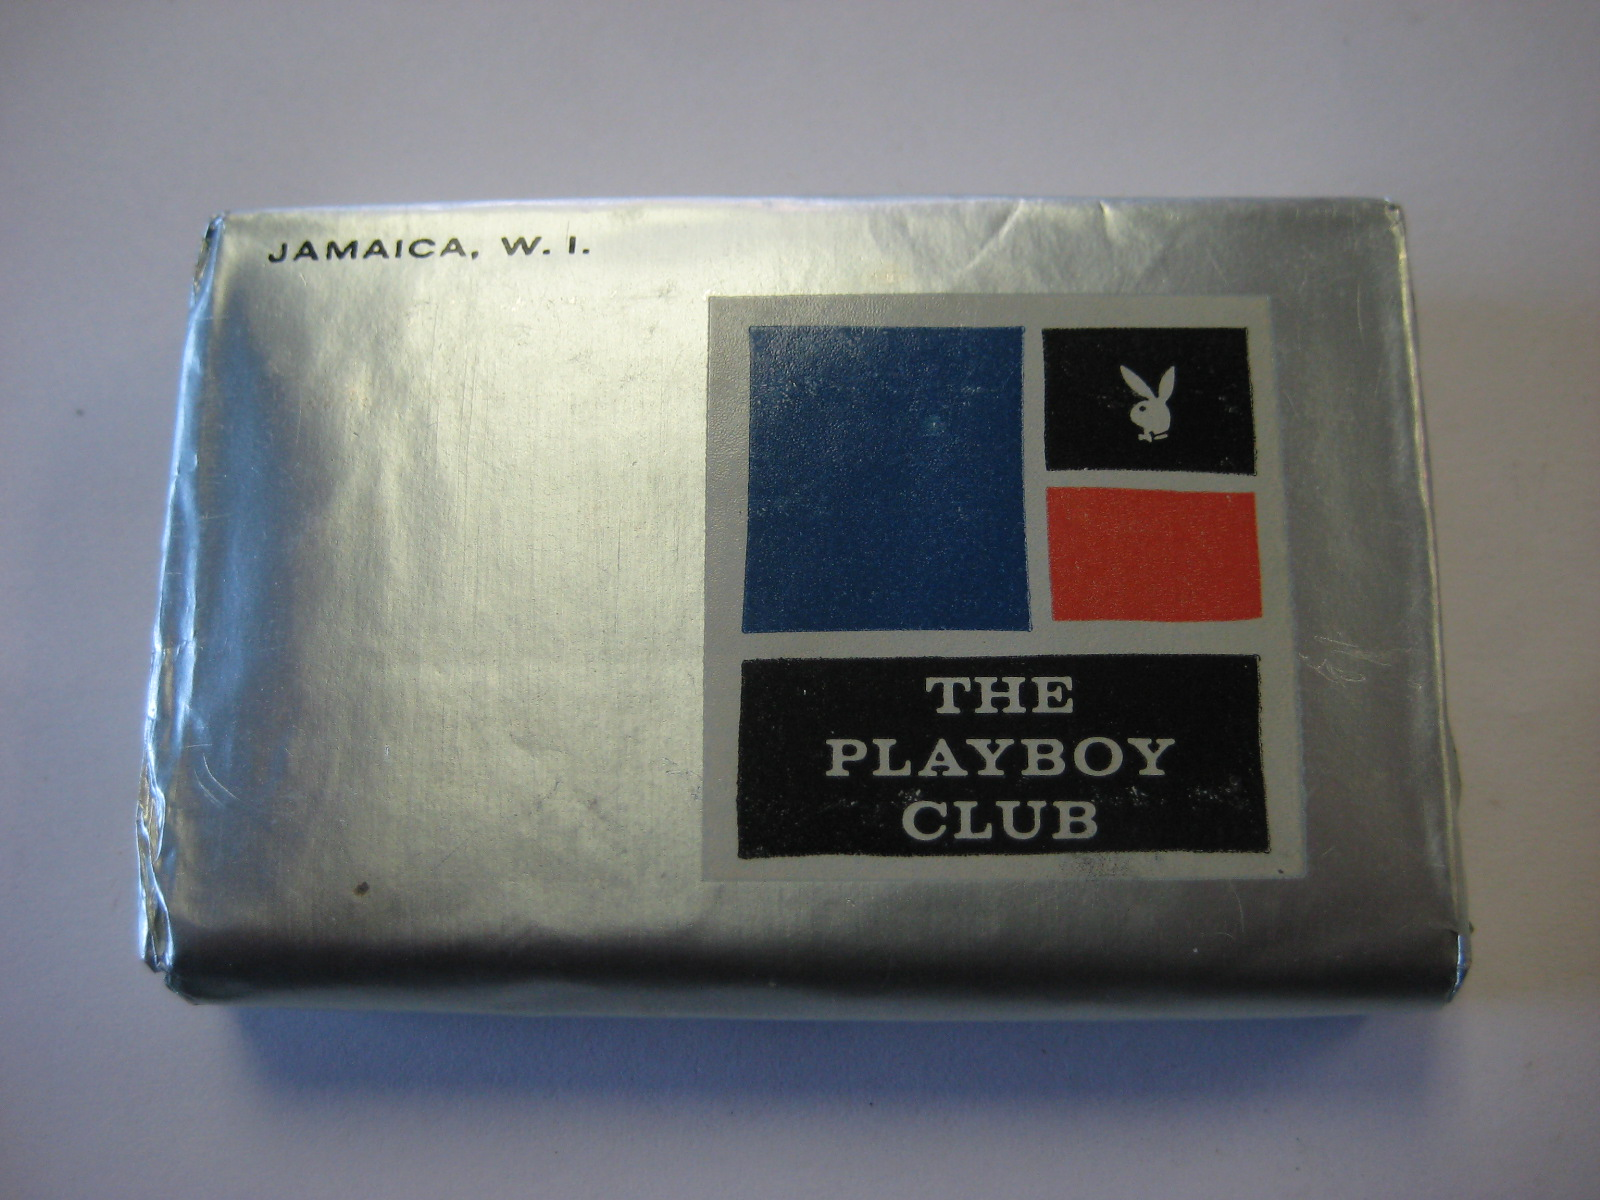 Playboy club resort Jamaica bar soap Palmolive